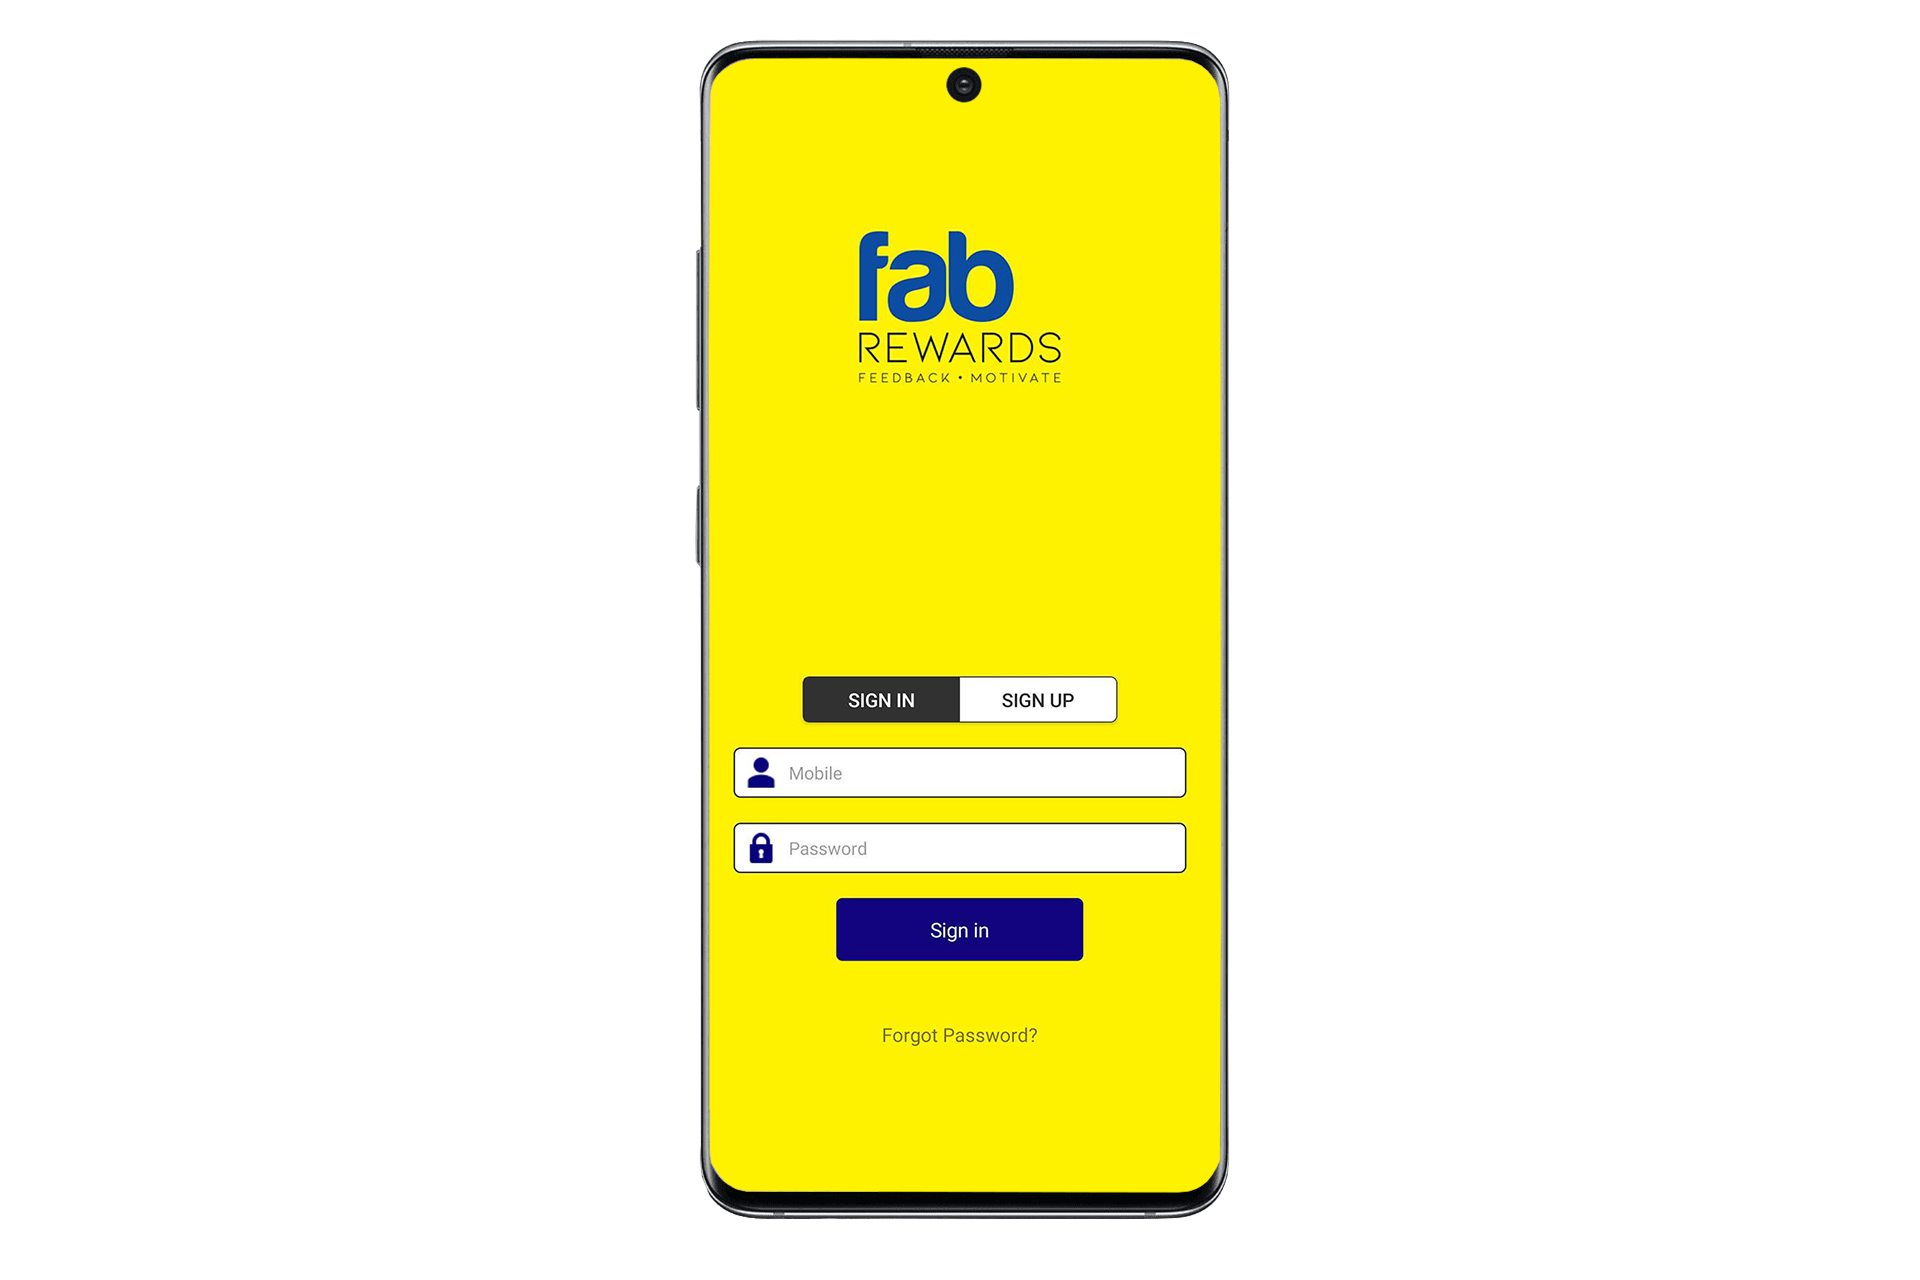 fabRewards-android-02